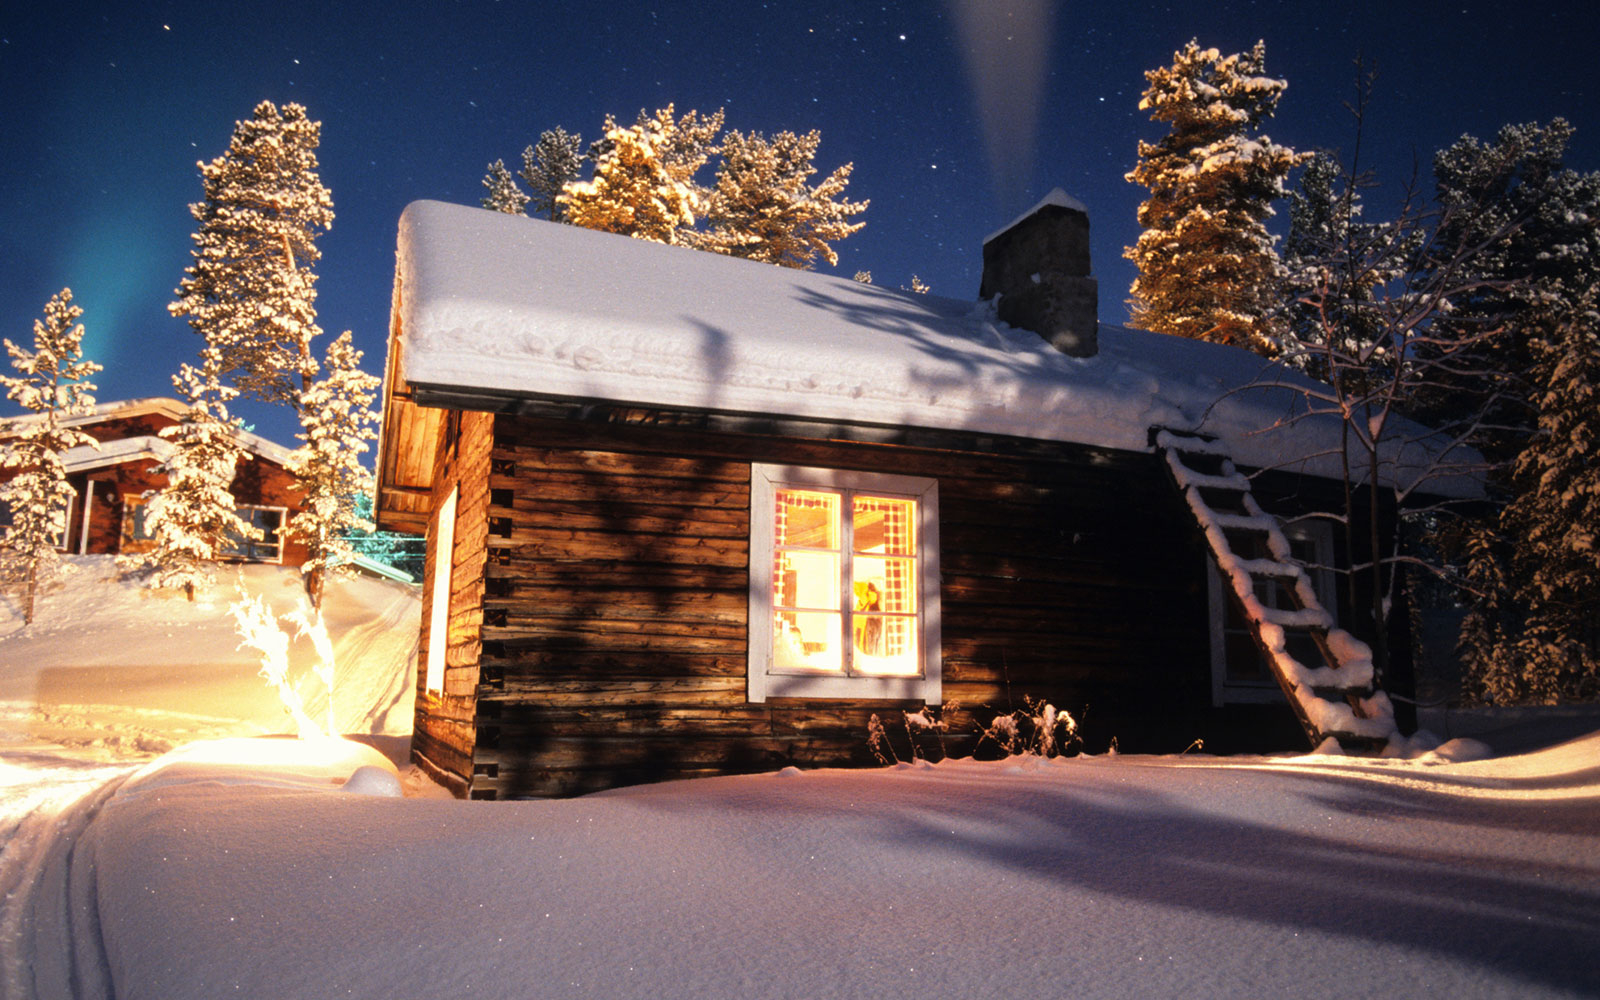 Europe, North Europe, Scandinavia, Finland, Lapland, Lemmenjoki, A very old and original house of the Sami people.